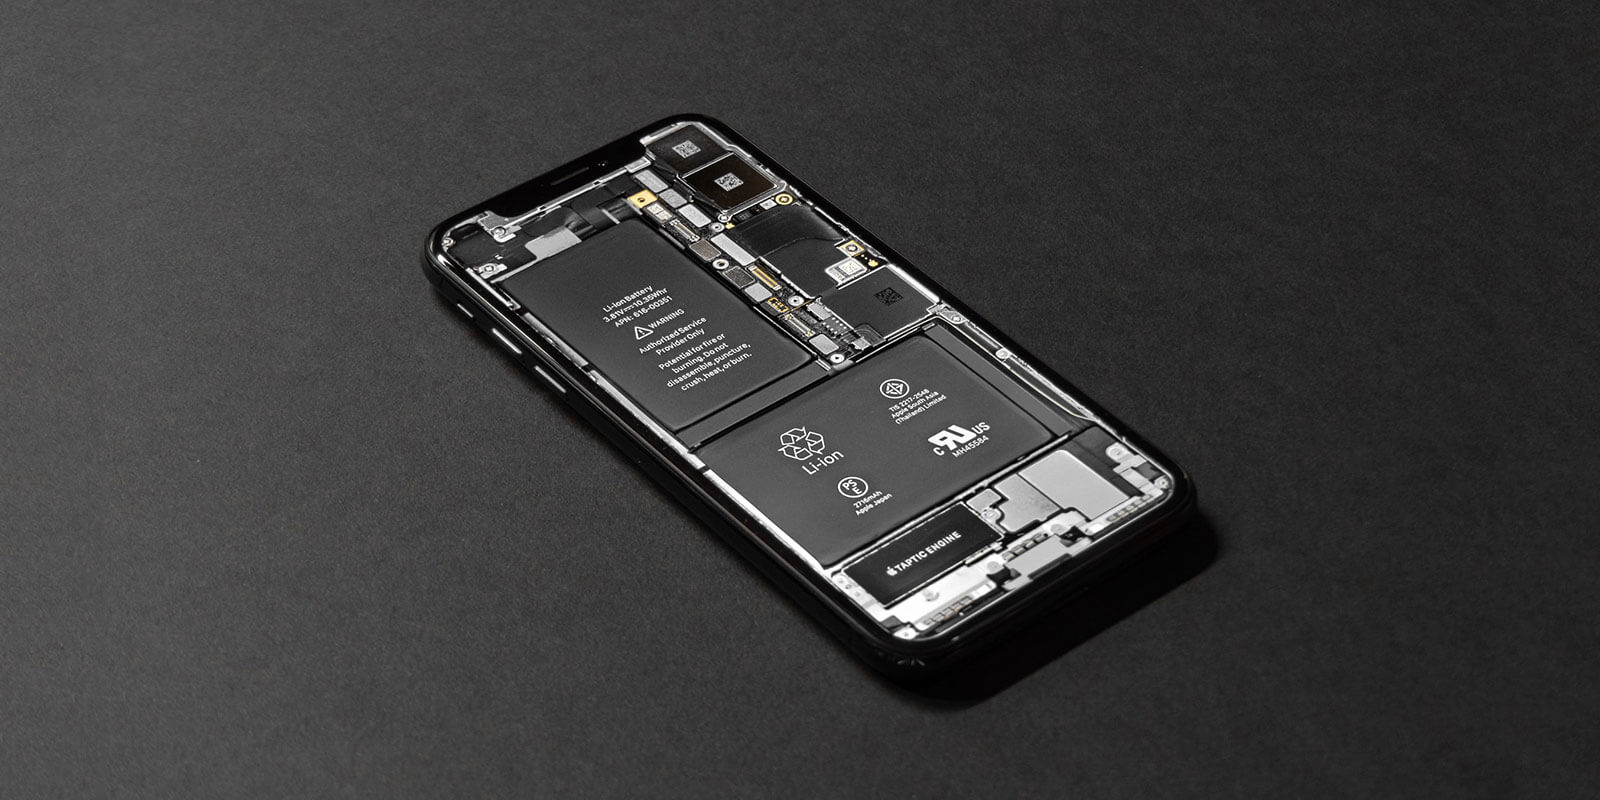 Iphone Battery Health Everything You Need To Know